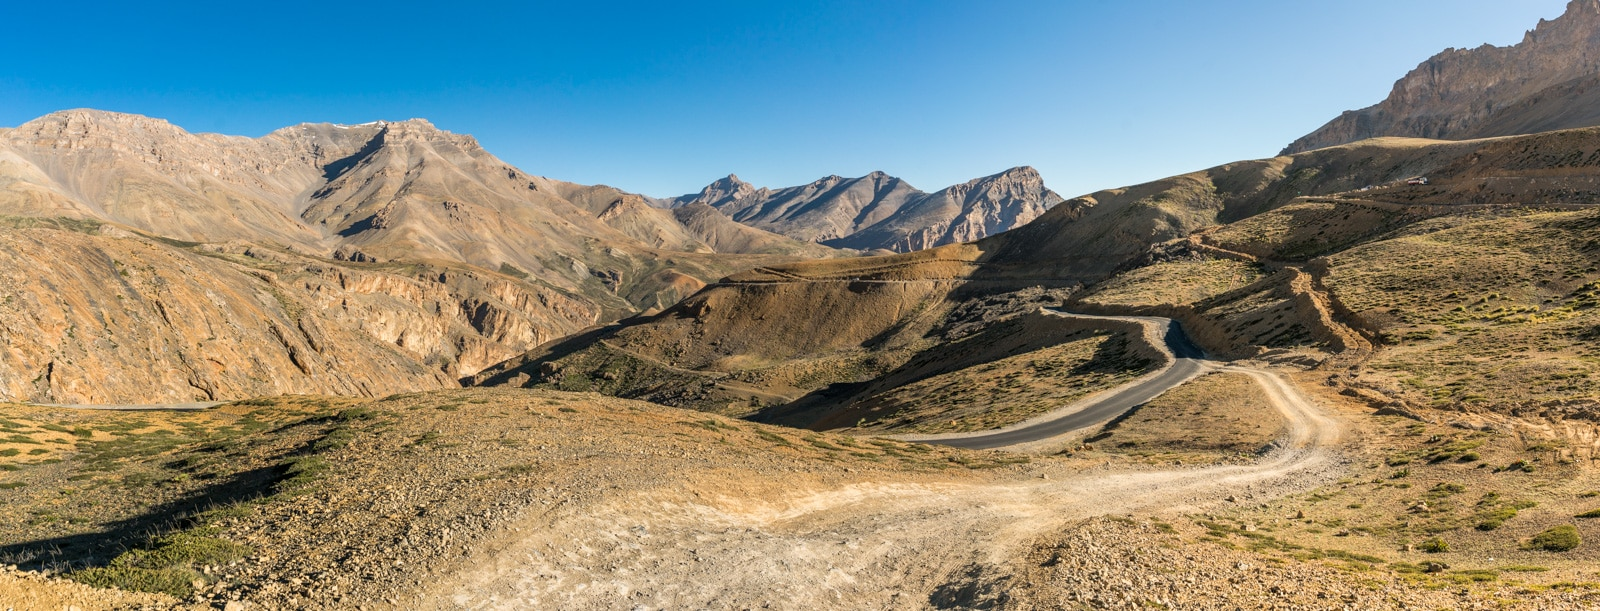 Hitchhiking the Leh - Manali highway - Dirt road in Ladakh - Lost With Purpose travel blog